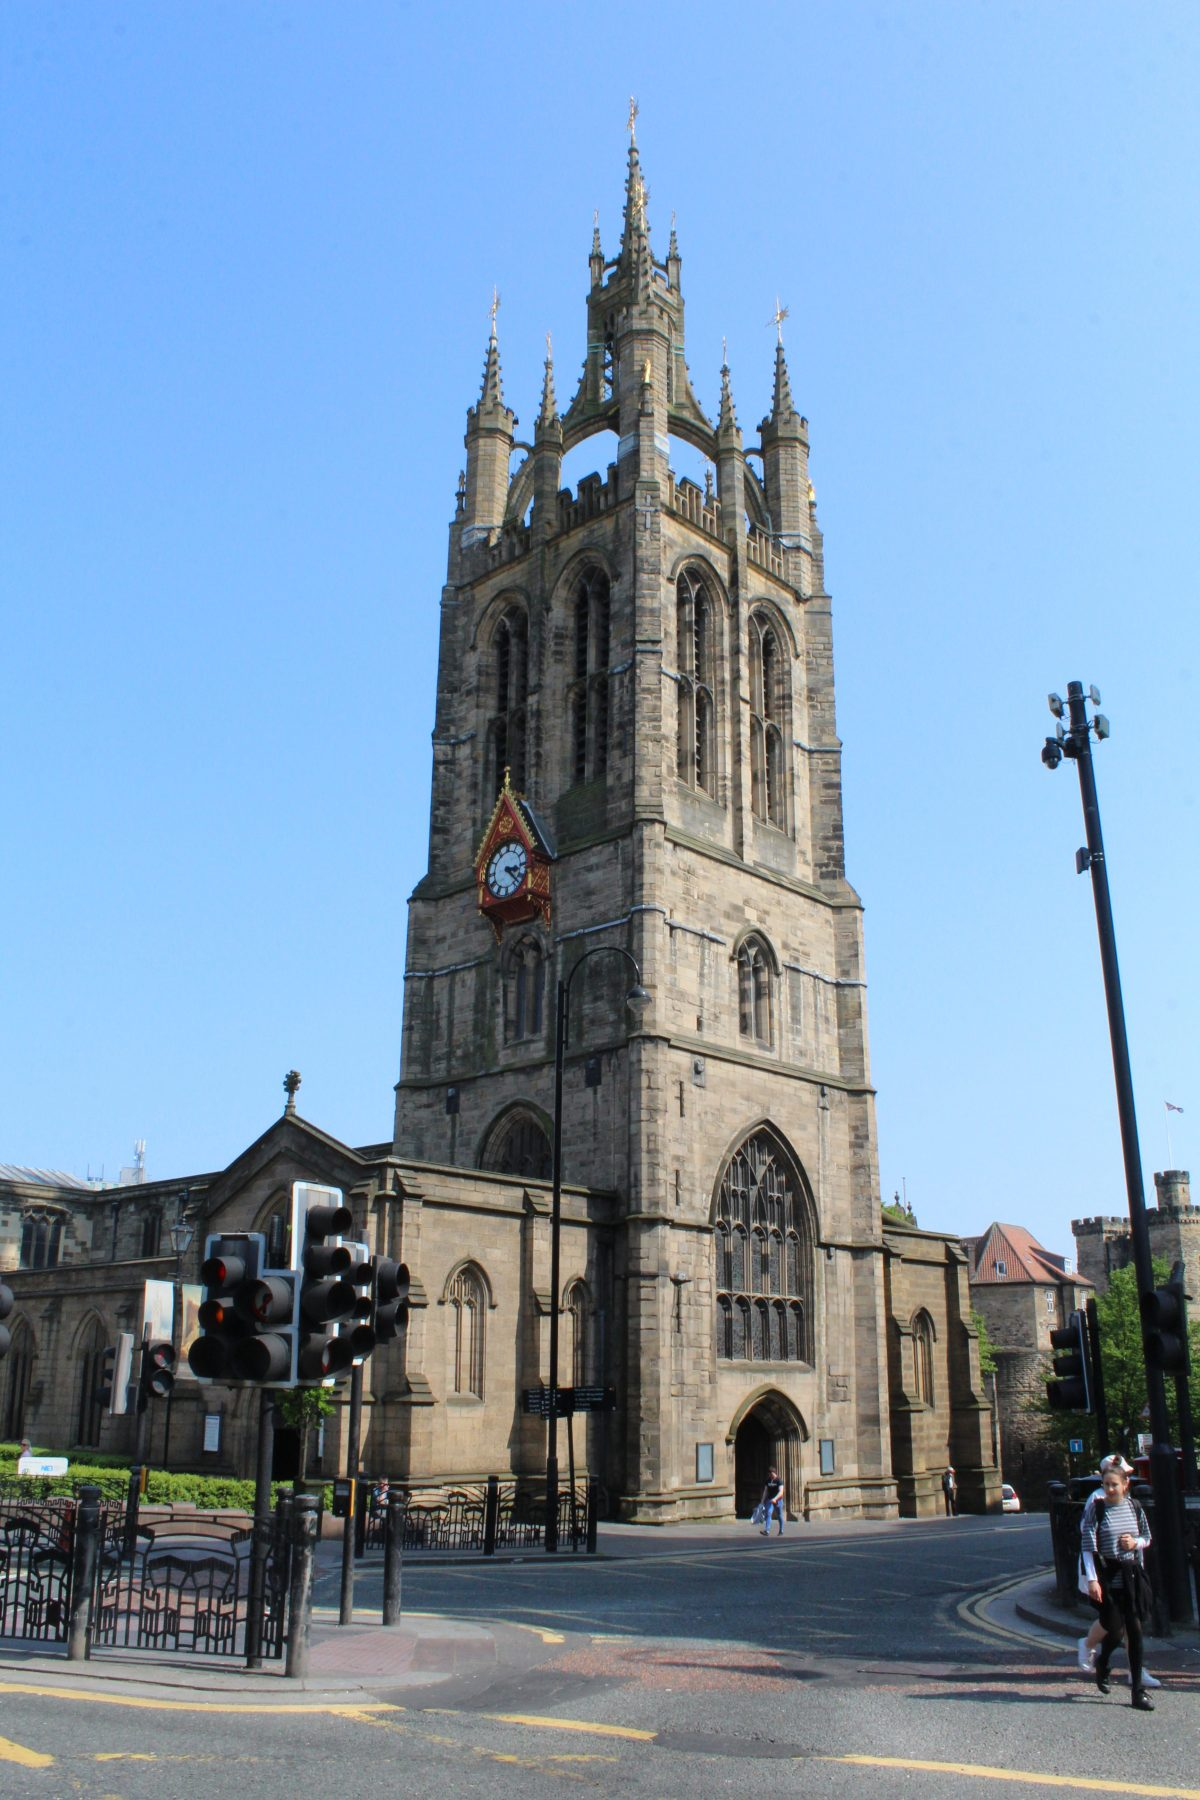 First person view of the Newcastle Cathedral from across the road